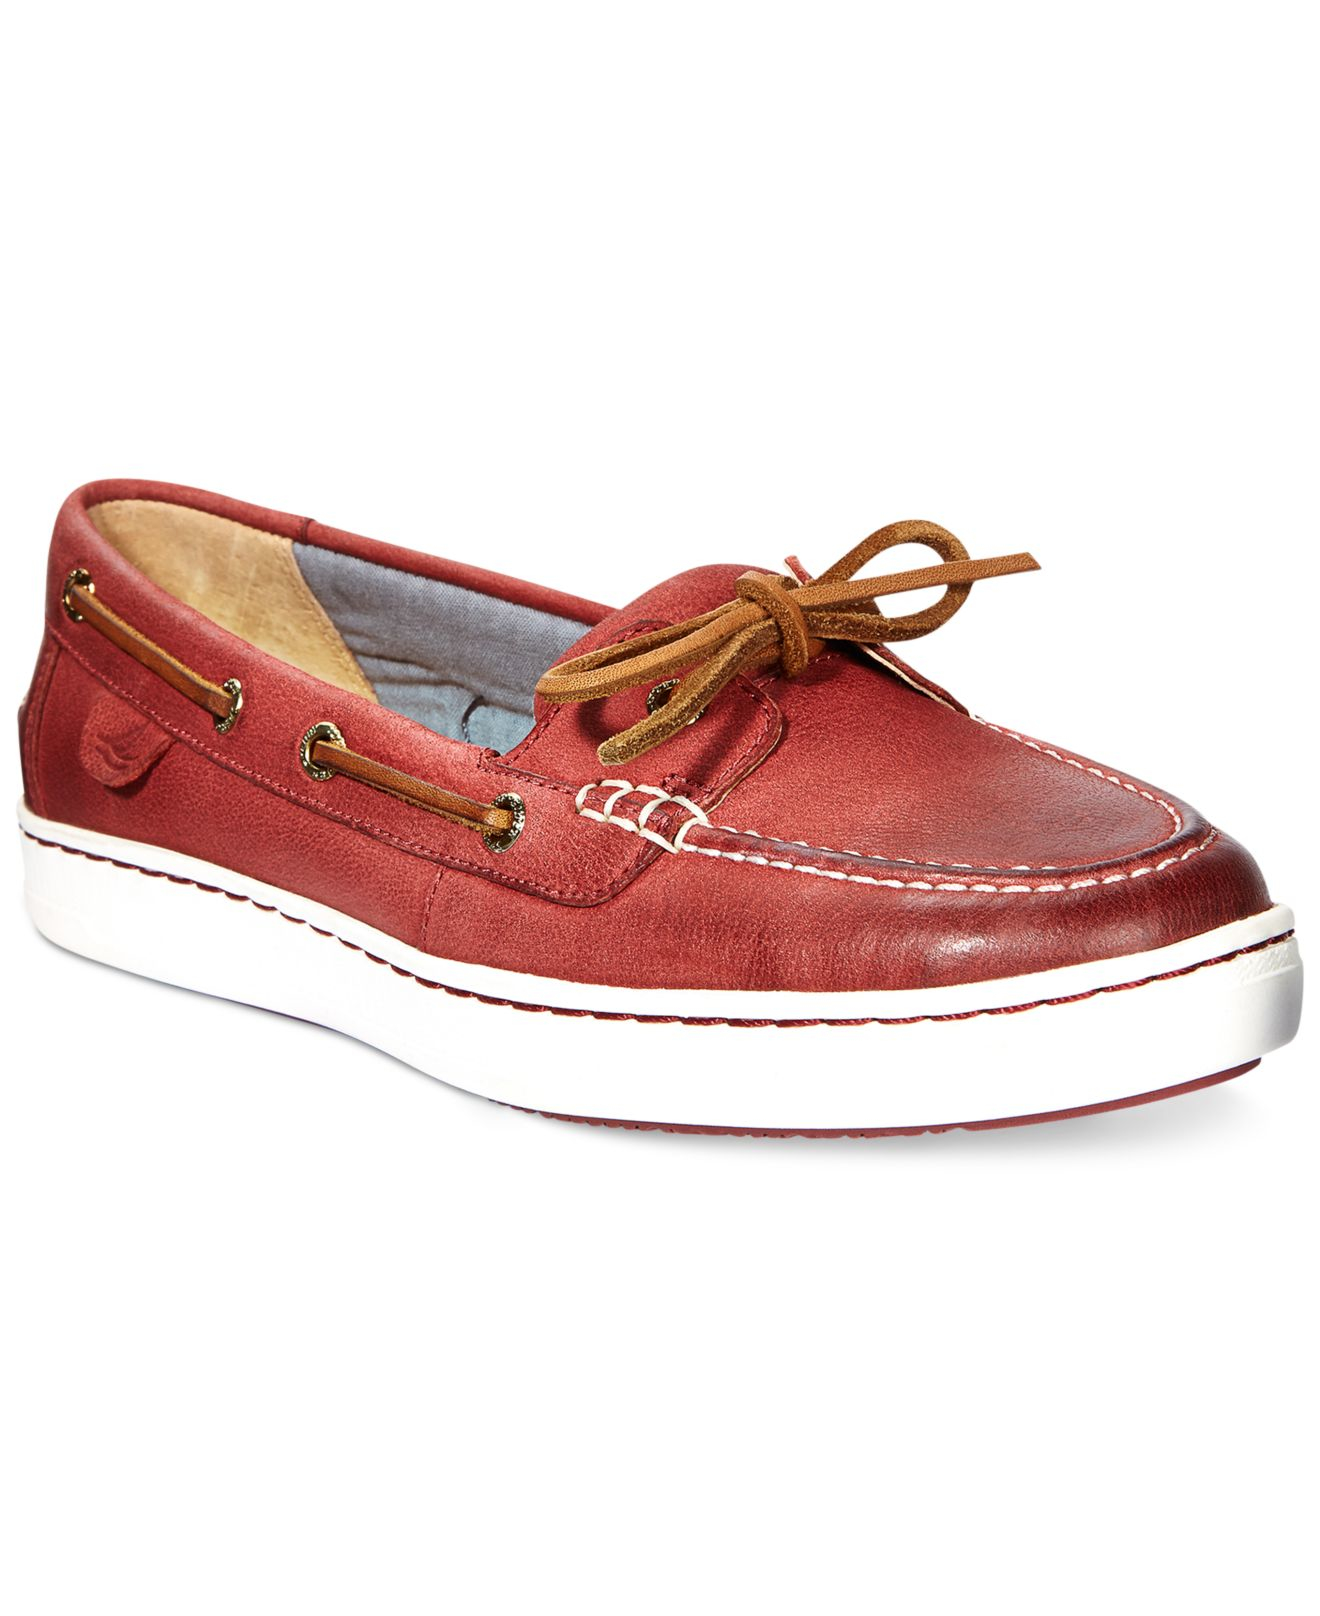 Women Sperry Shoes Top Sider Non Marking